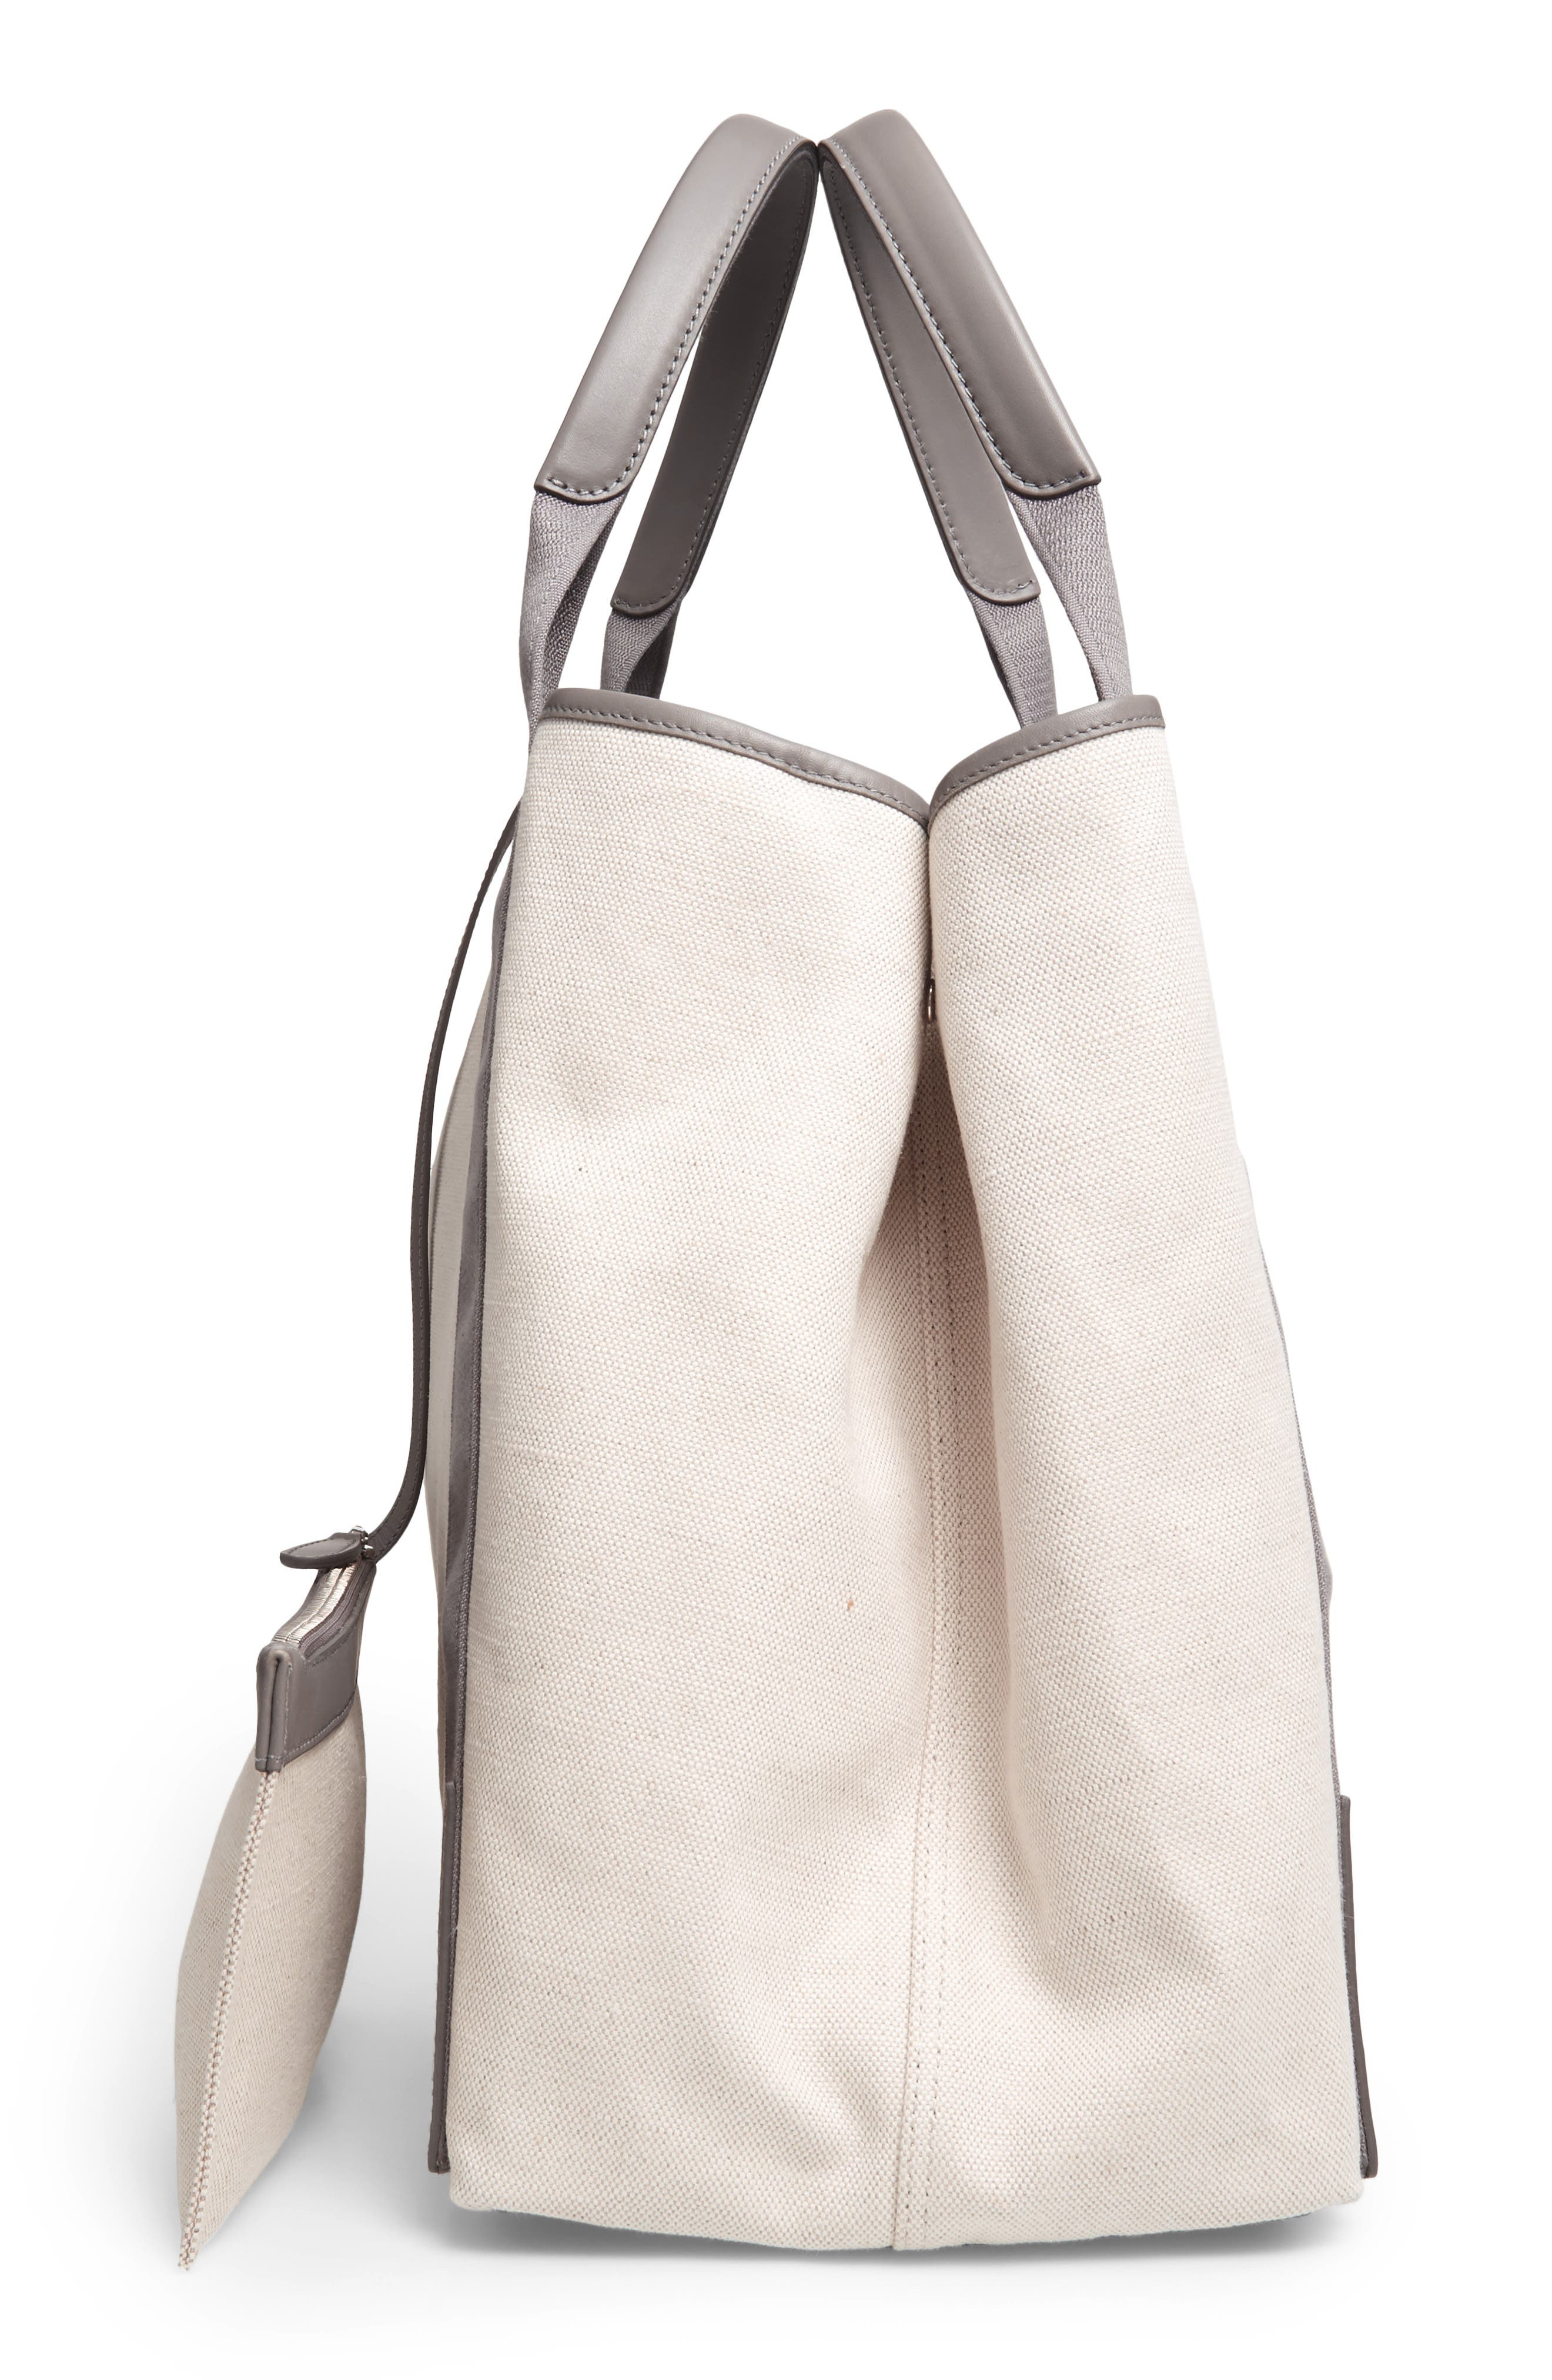 Medium Cabas Canvas Tote,                             Alternate thumbnail 5, color,                             2881 Gris Taupe/Nat/Grt